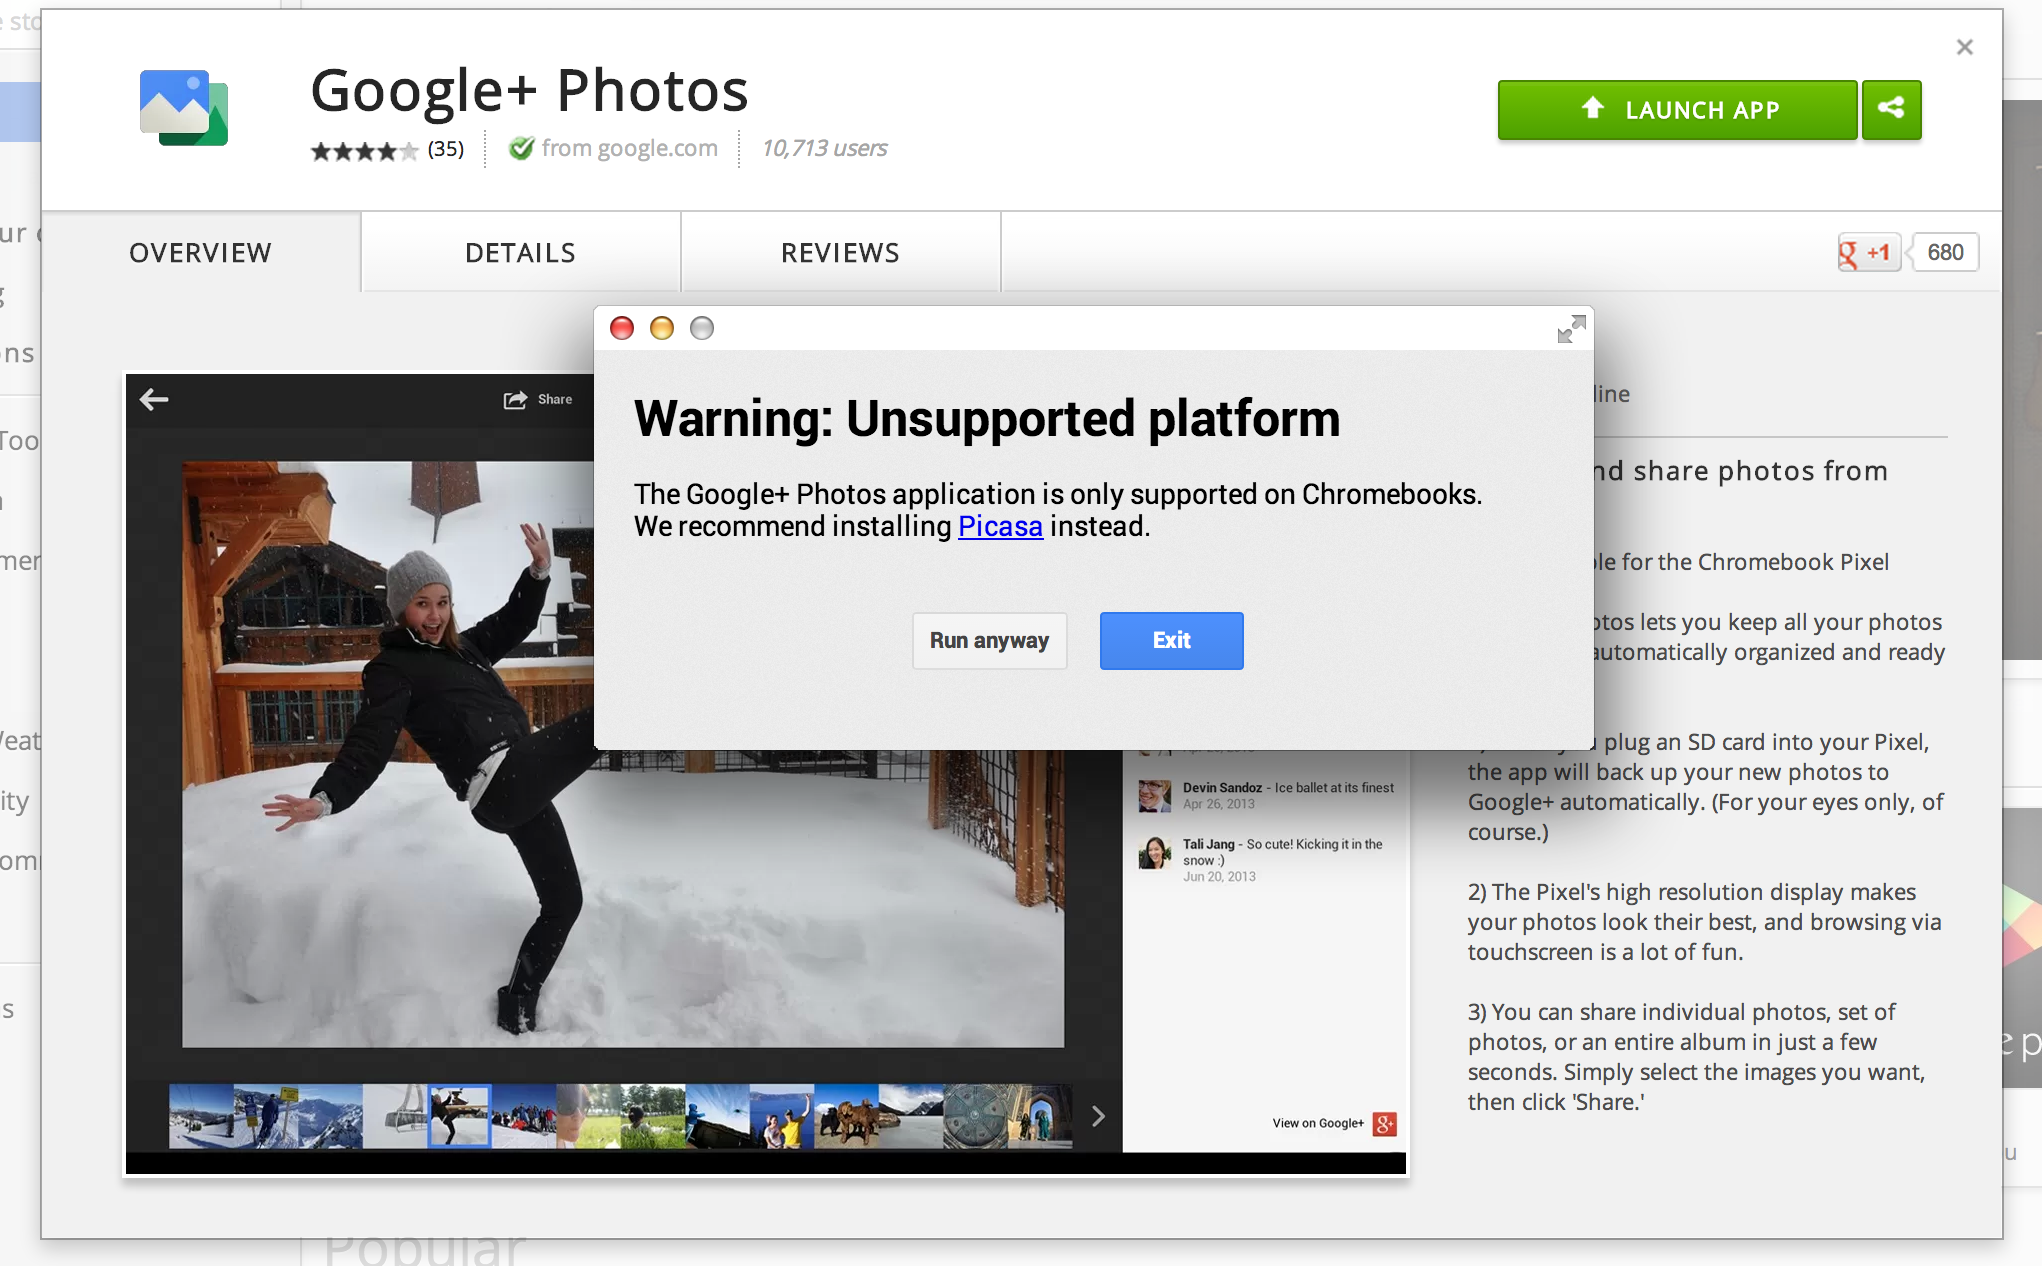 How to enable the Google+ Photos Chrome app on Mac - 9to5Mac